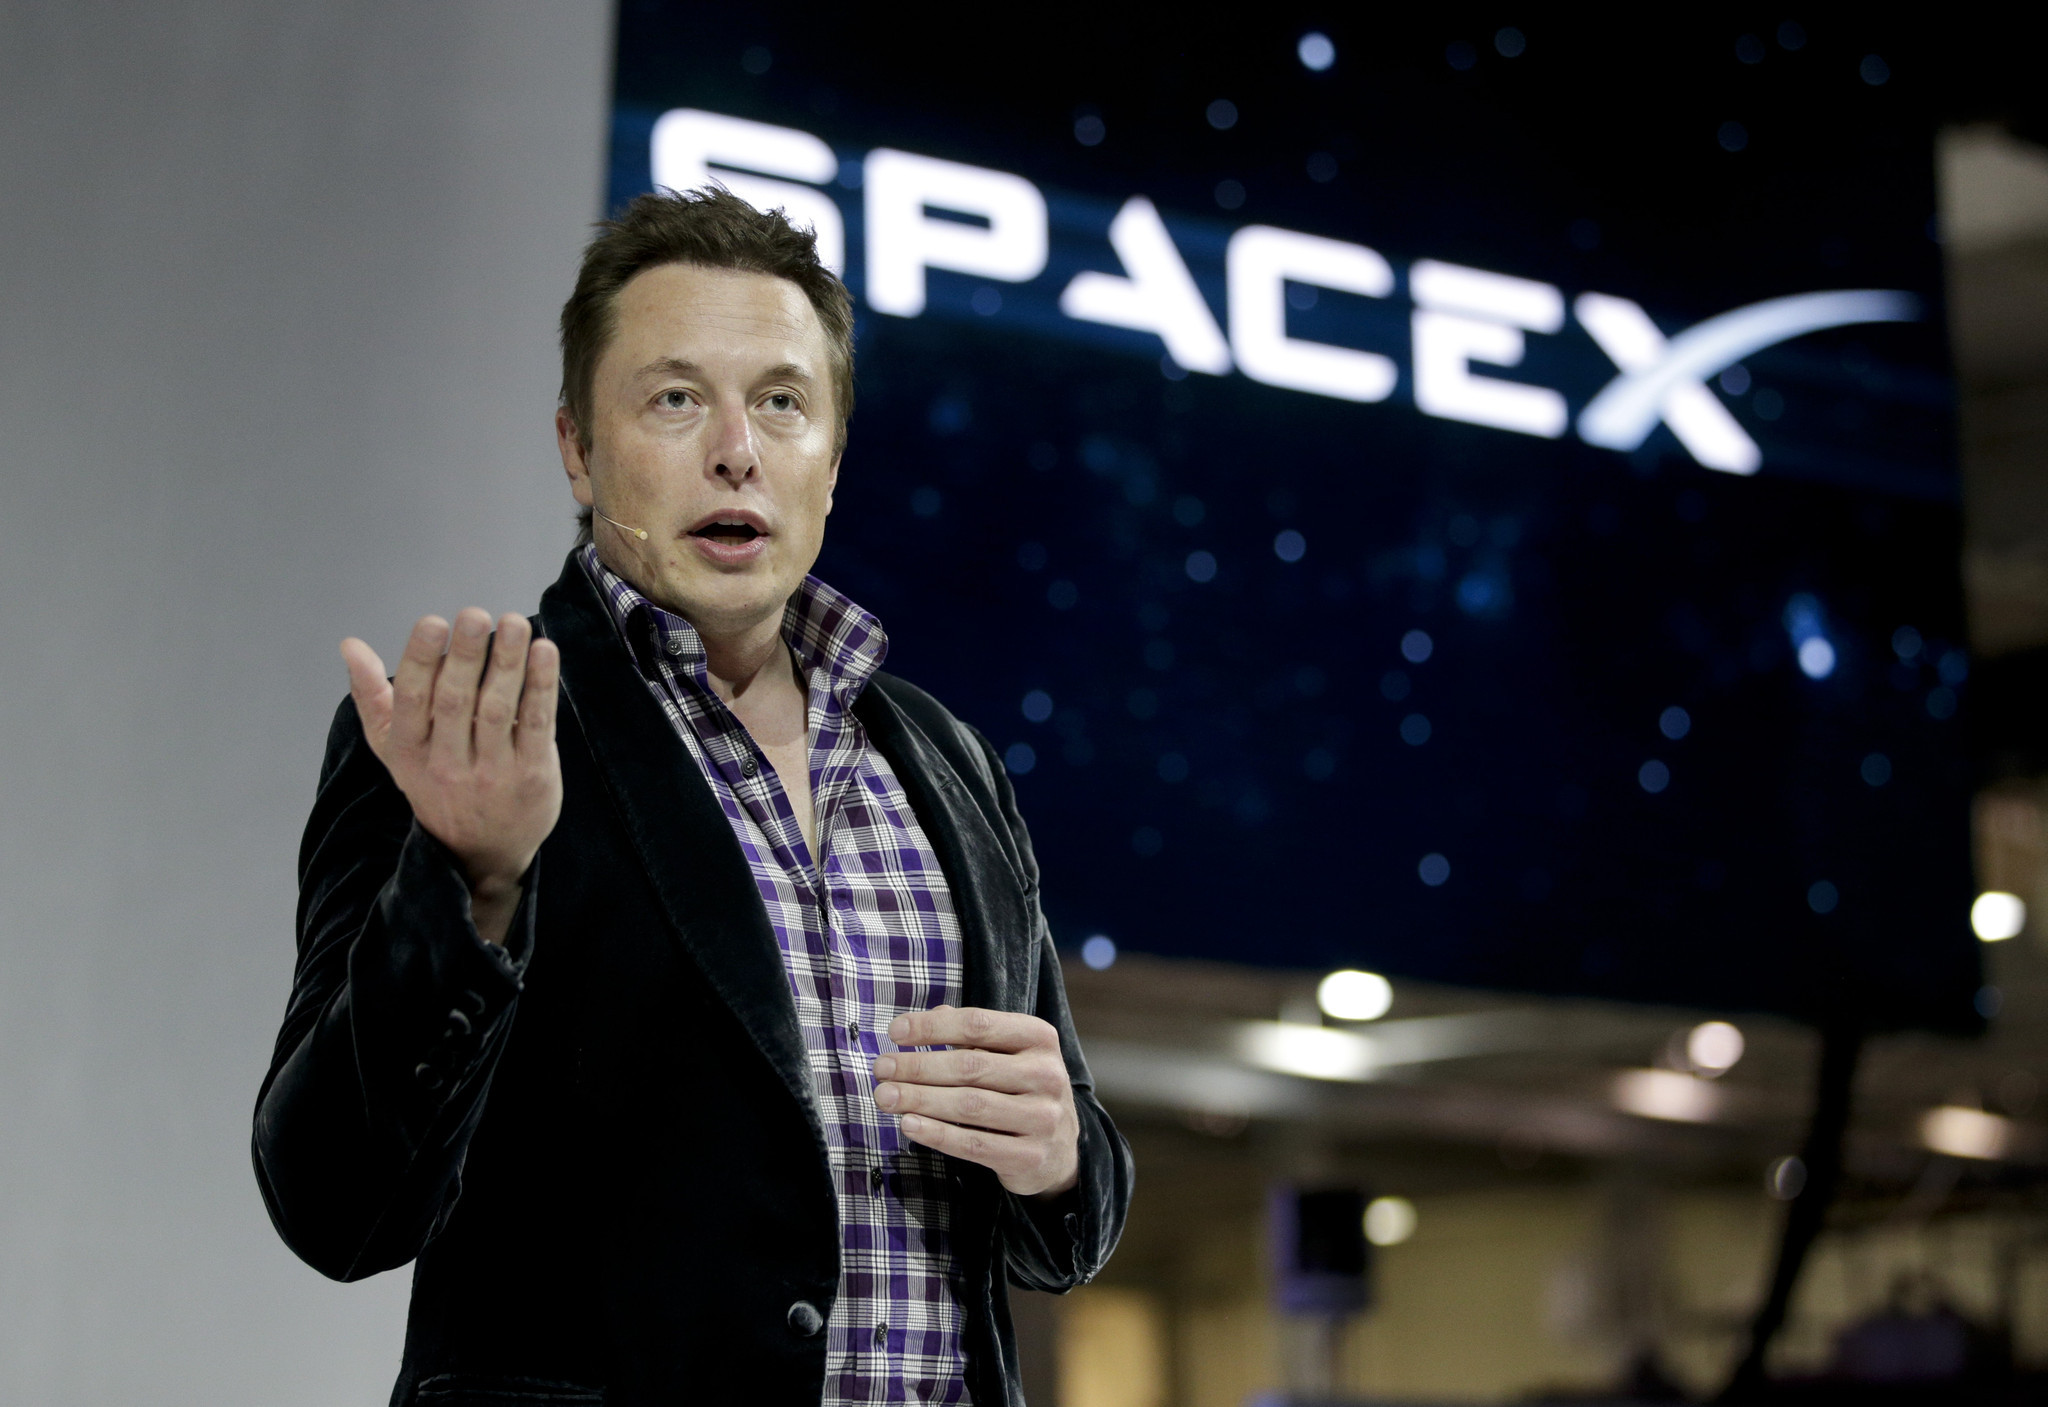 SpaceX chief envisions 1000 passenger ships flying to Mars